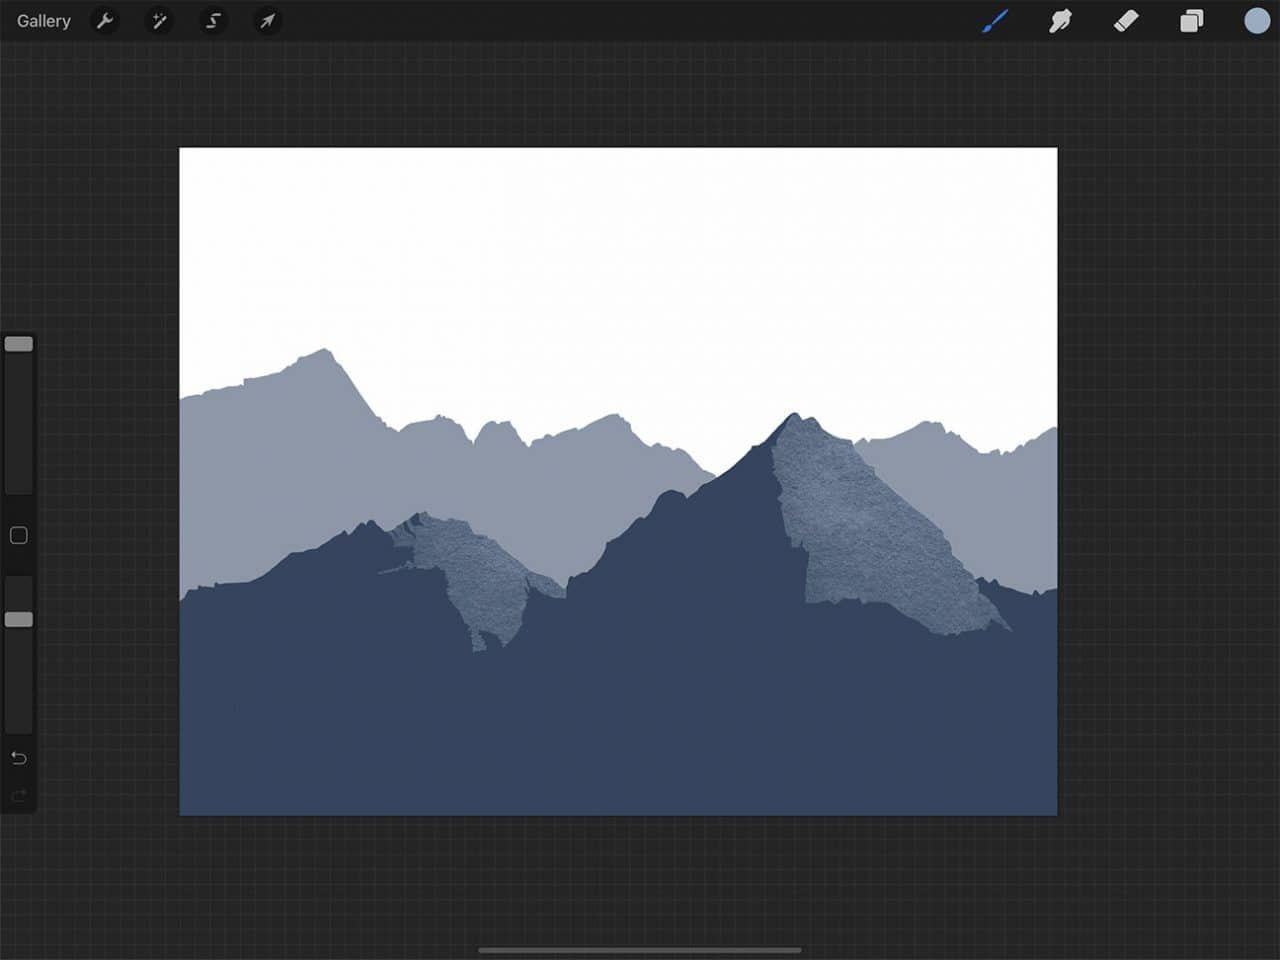 How to Draw Mountains: Drawing with Procreate's lasso tool makes adding details easy